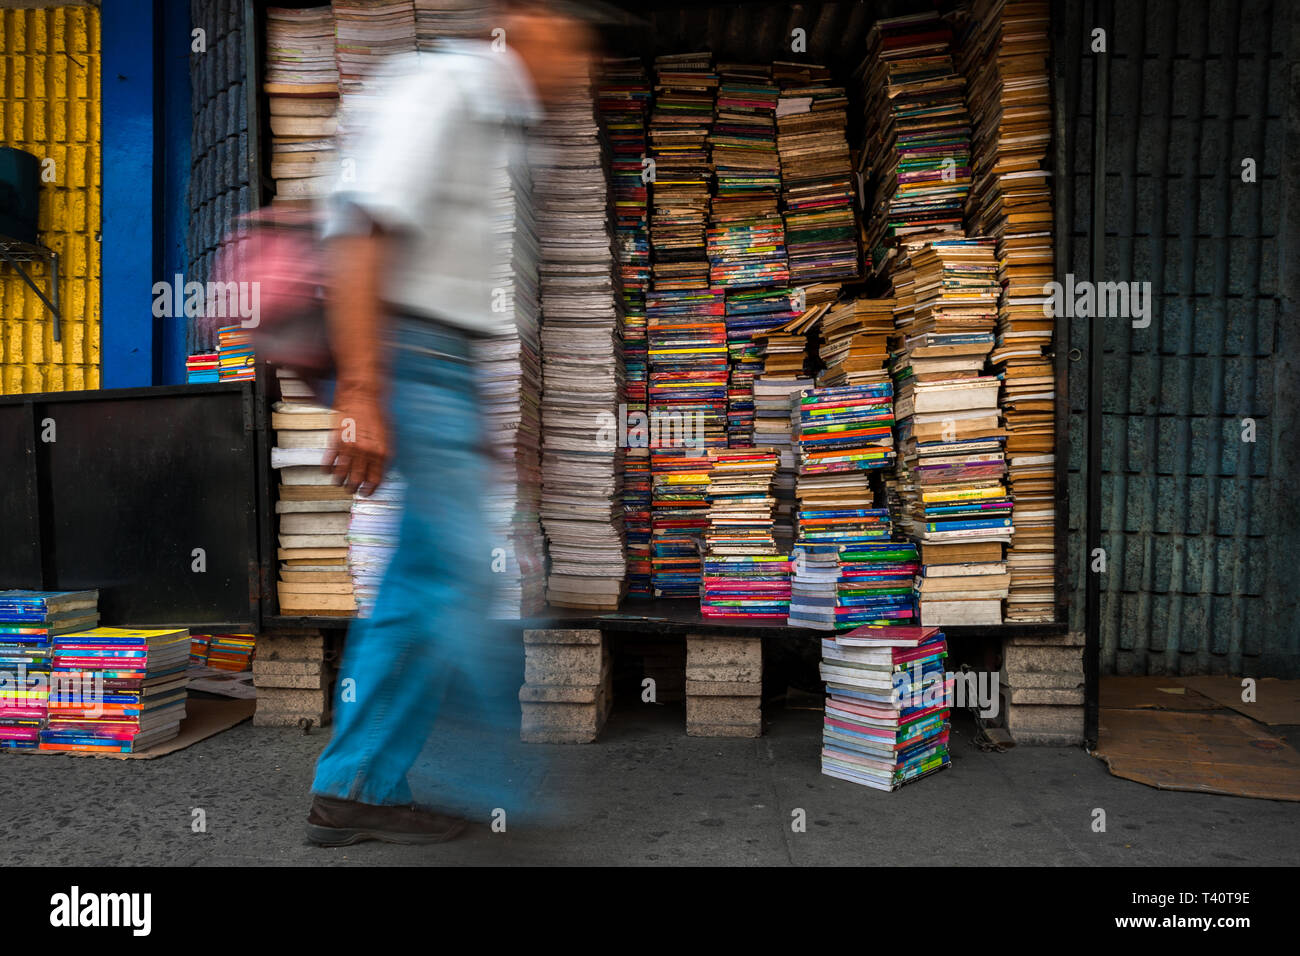 A Salvadoran man walks in front of piles of used books stacked in a box on the street in a secondhand bookshop in San Salvador, El Salvador. - Stock Image